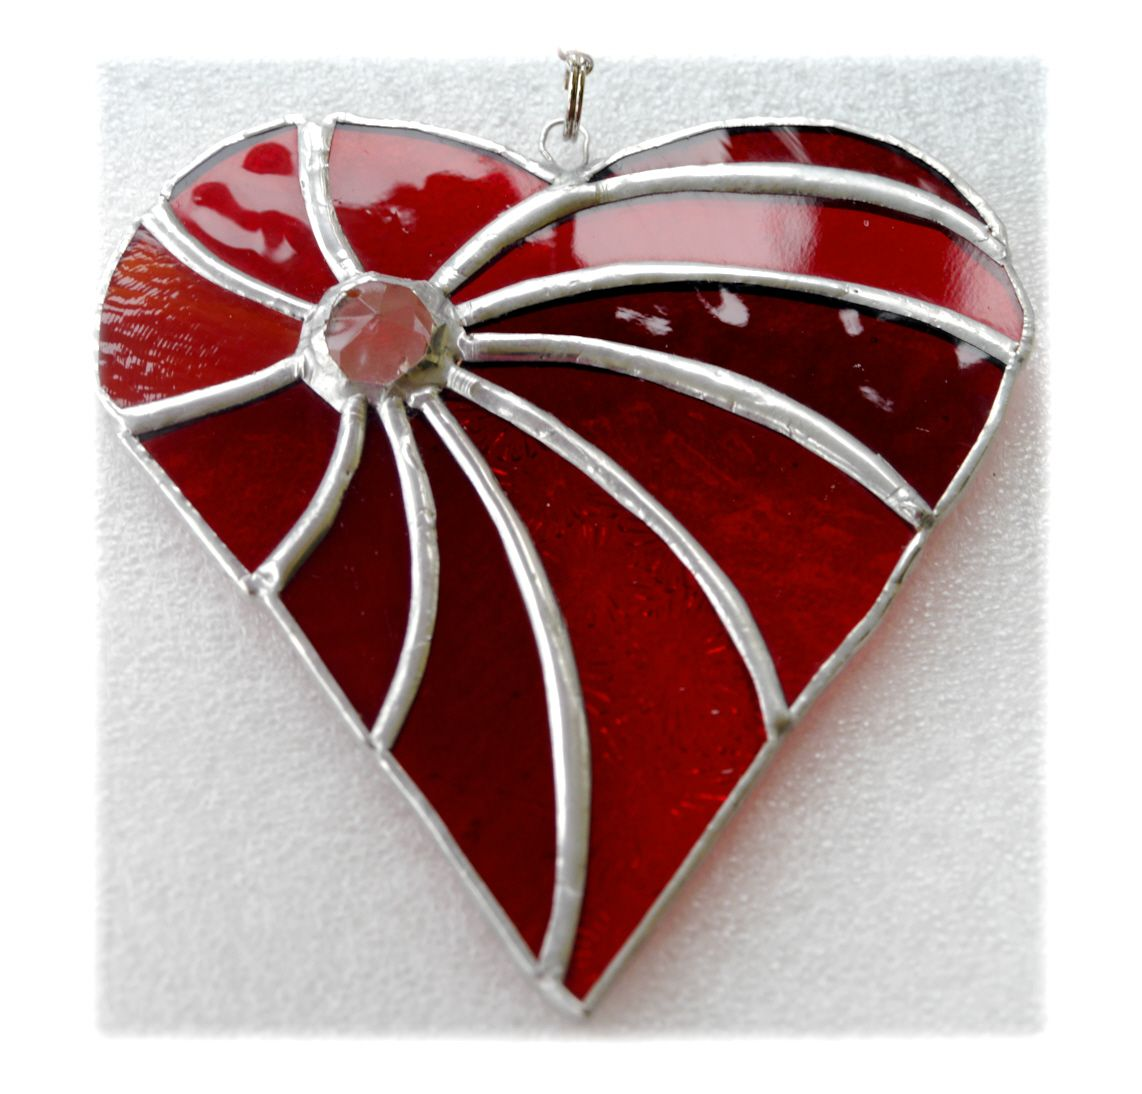 RED Swirled Heart 004 #1805 FREE 15.00